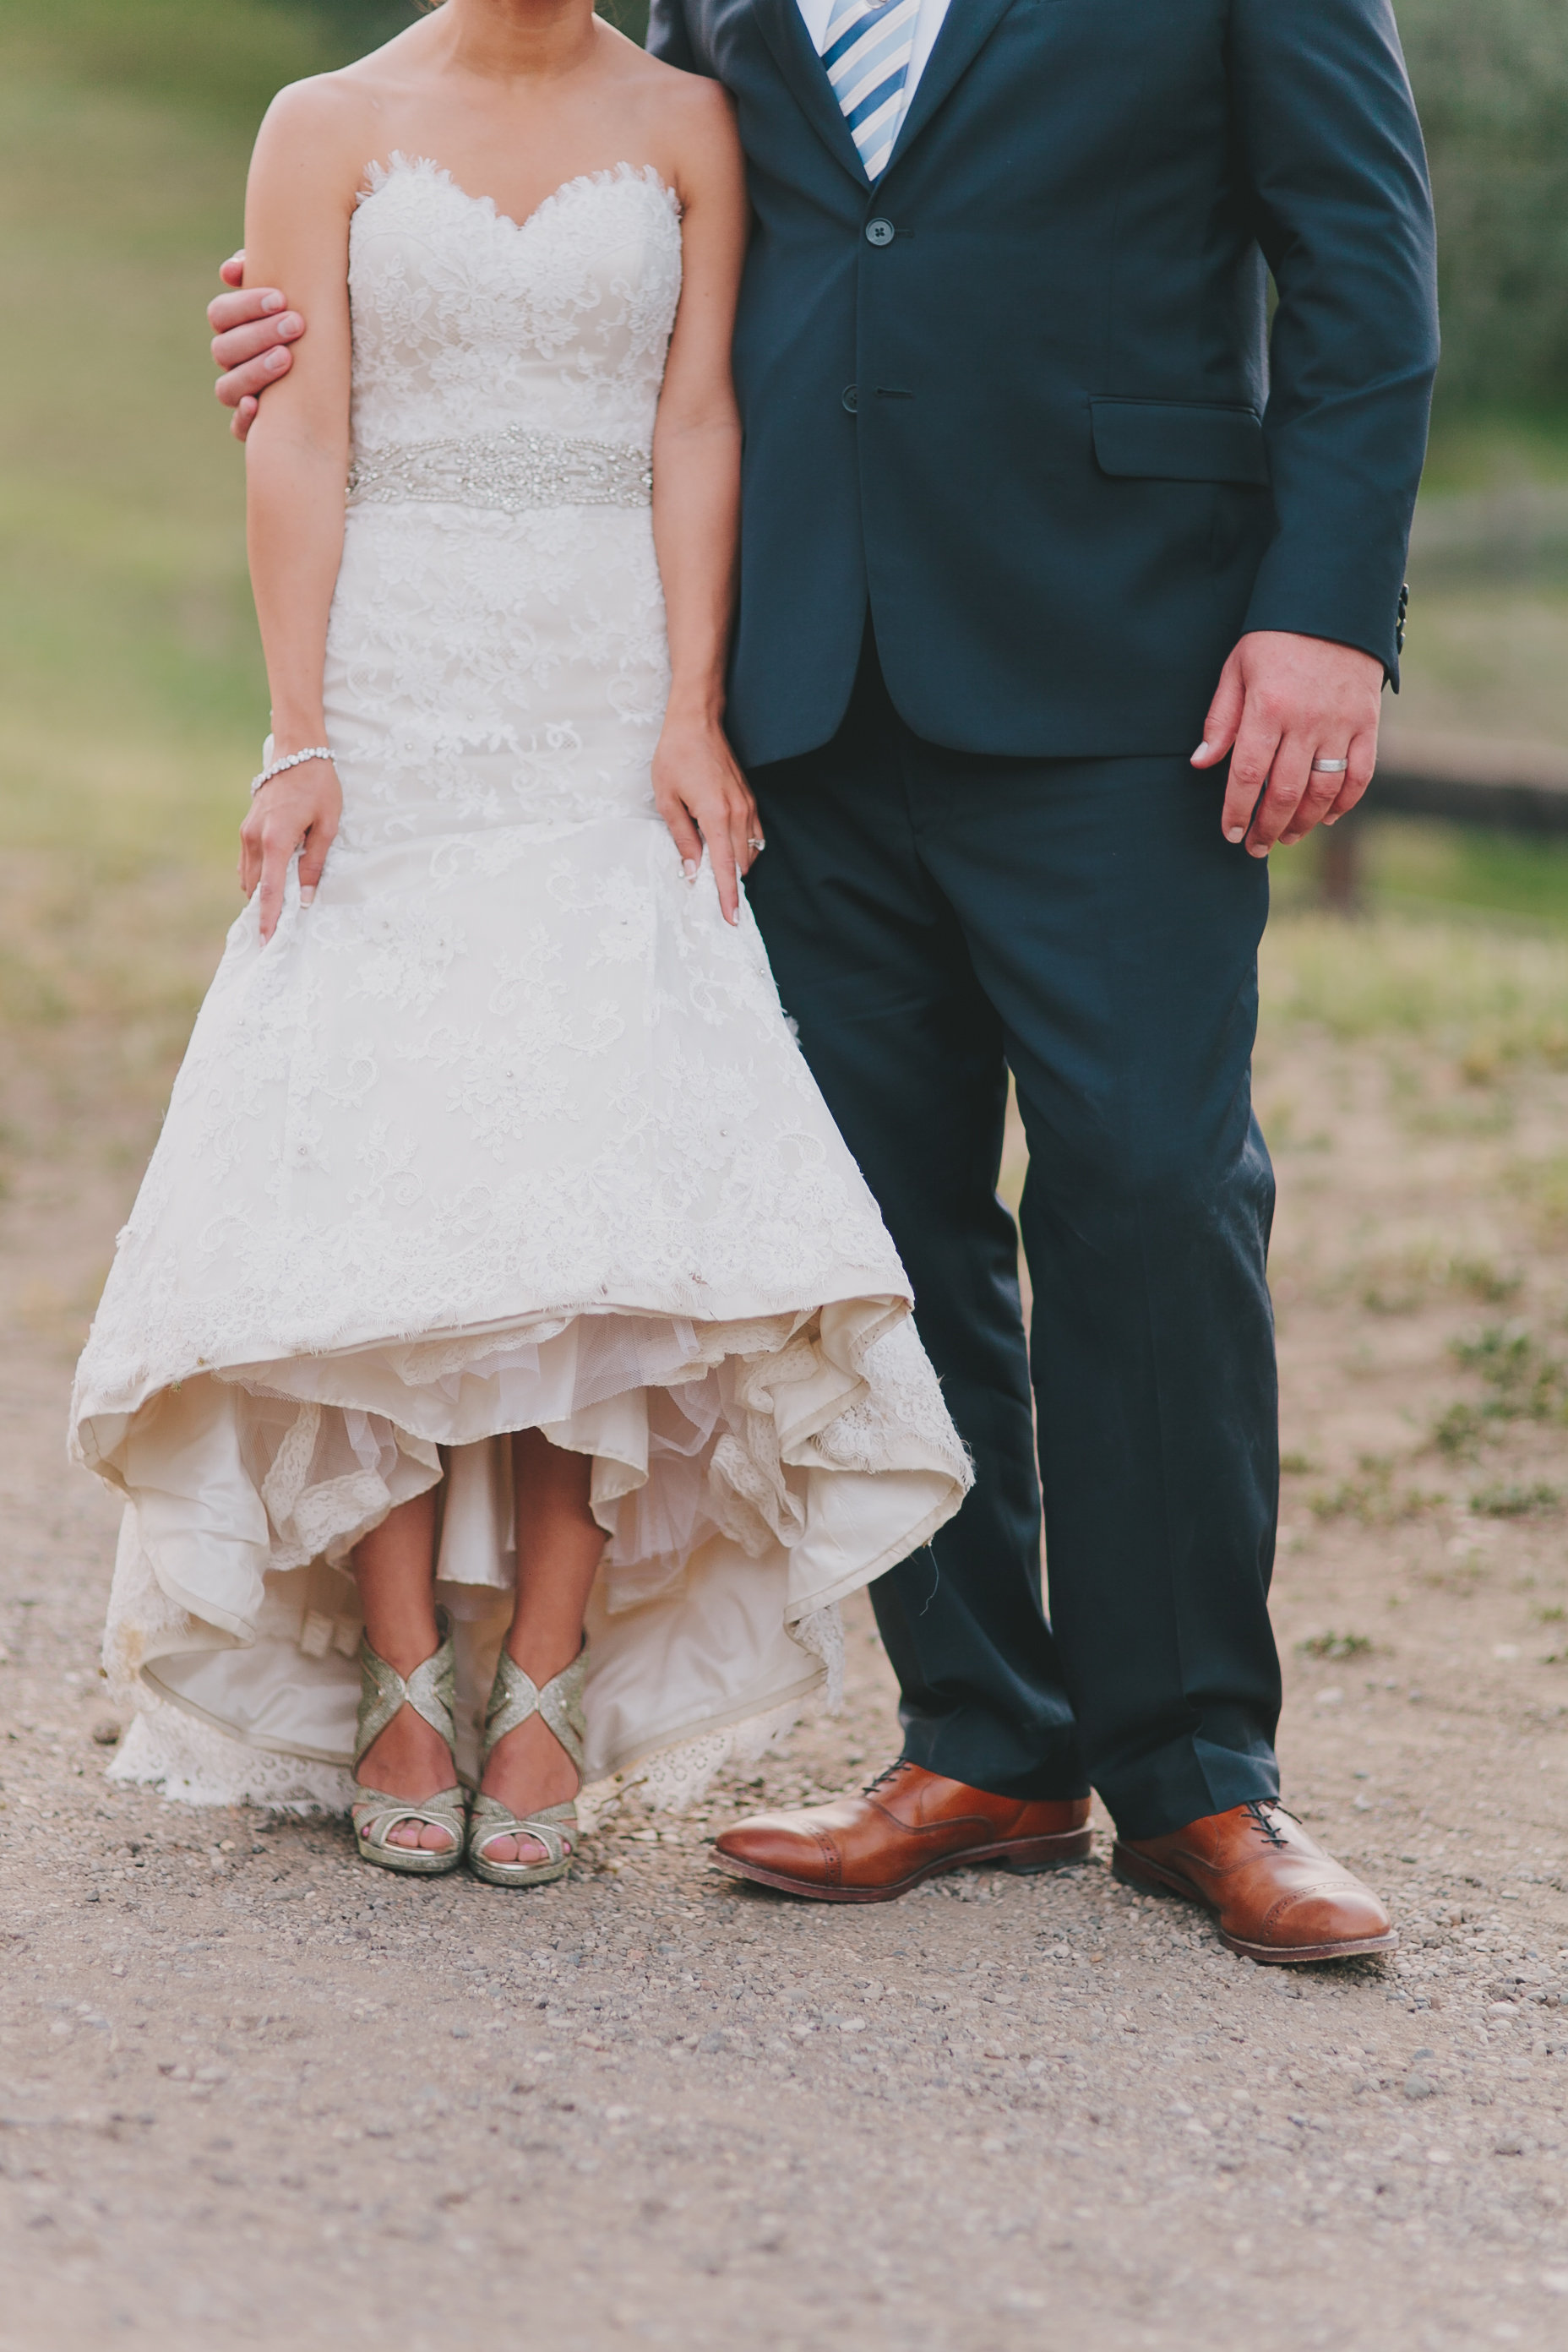 Carson Bianca Wedding by Jake and Necia Photography-06 brideandgroom-0137.jpg